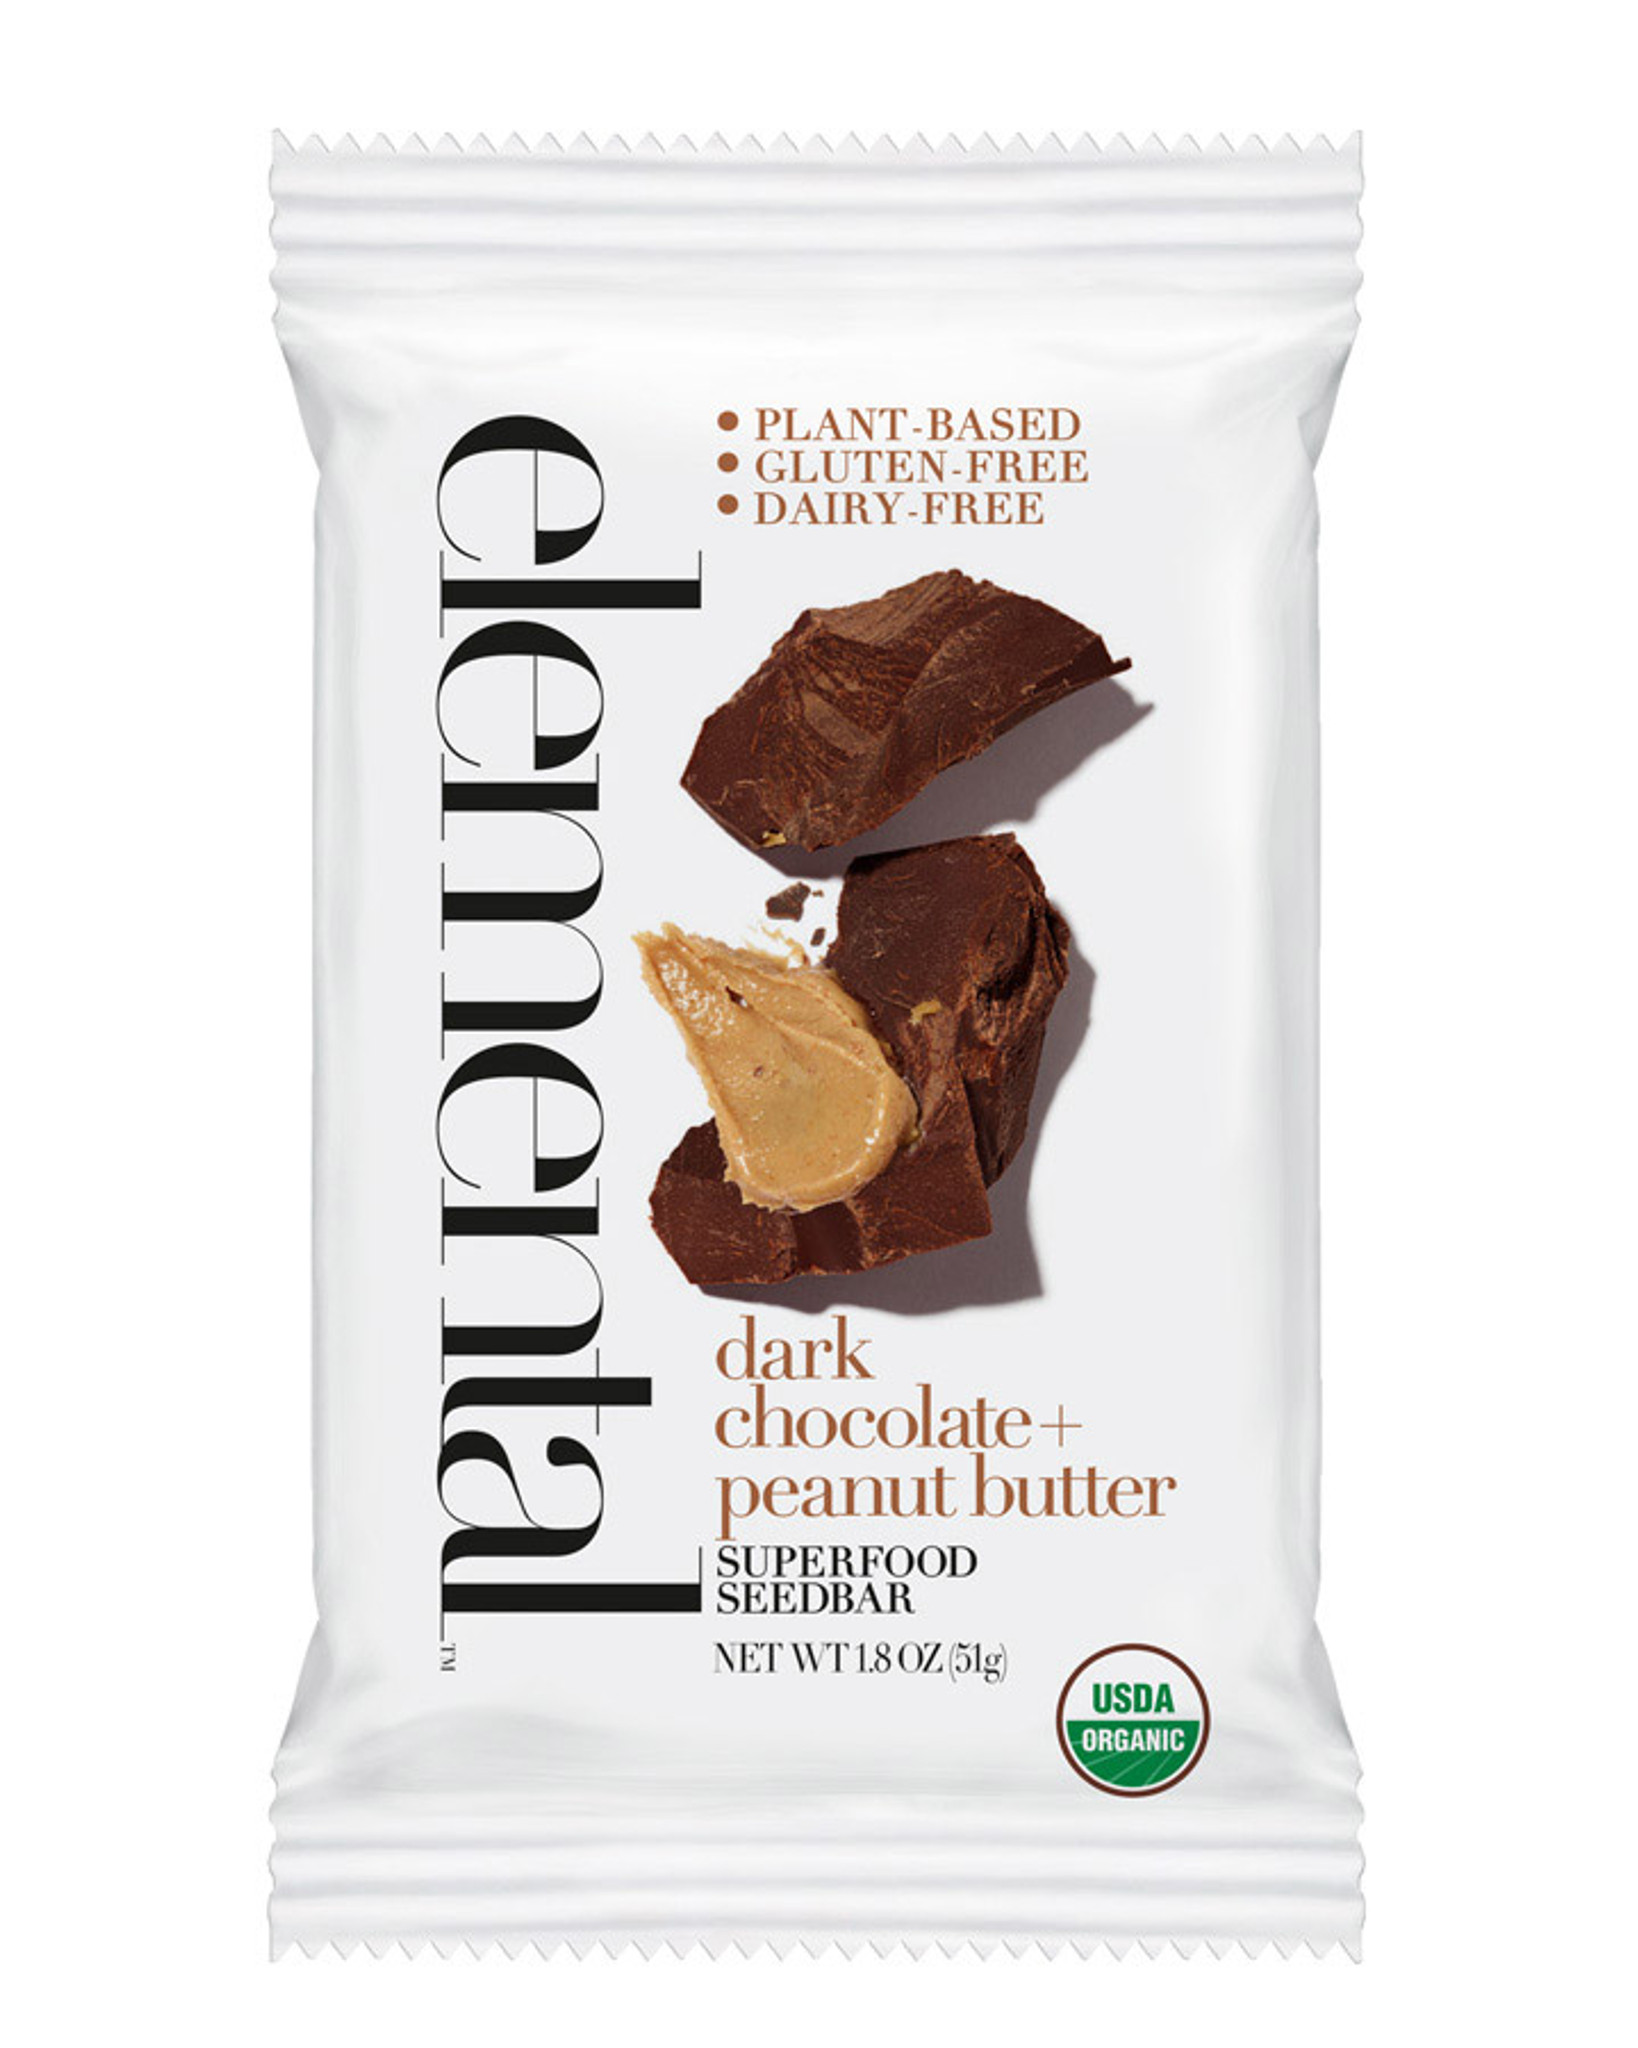 Dark Chocolate + Peanut Butter Seedbar (12 bars per pack)